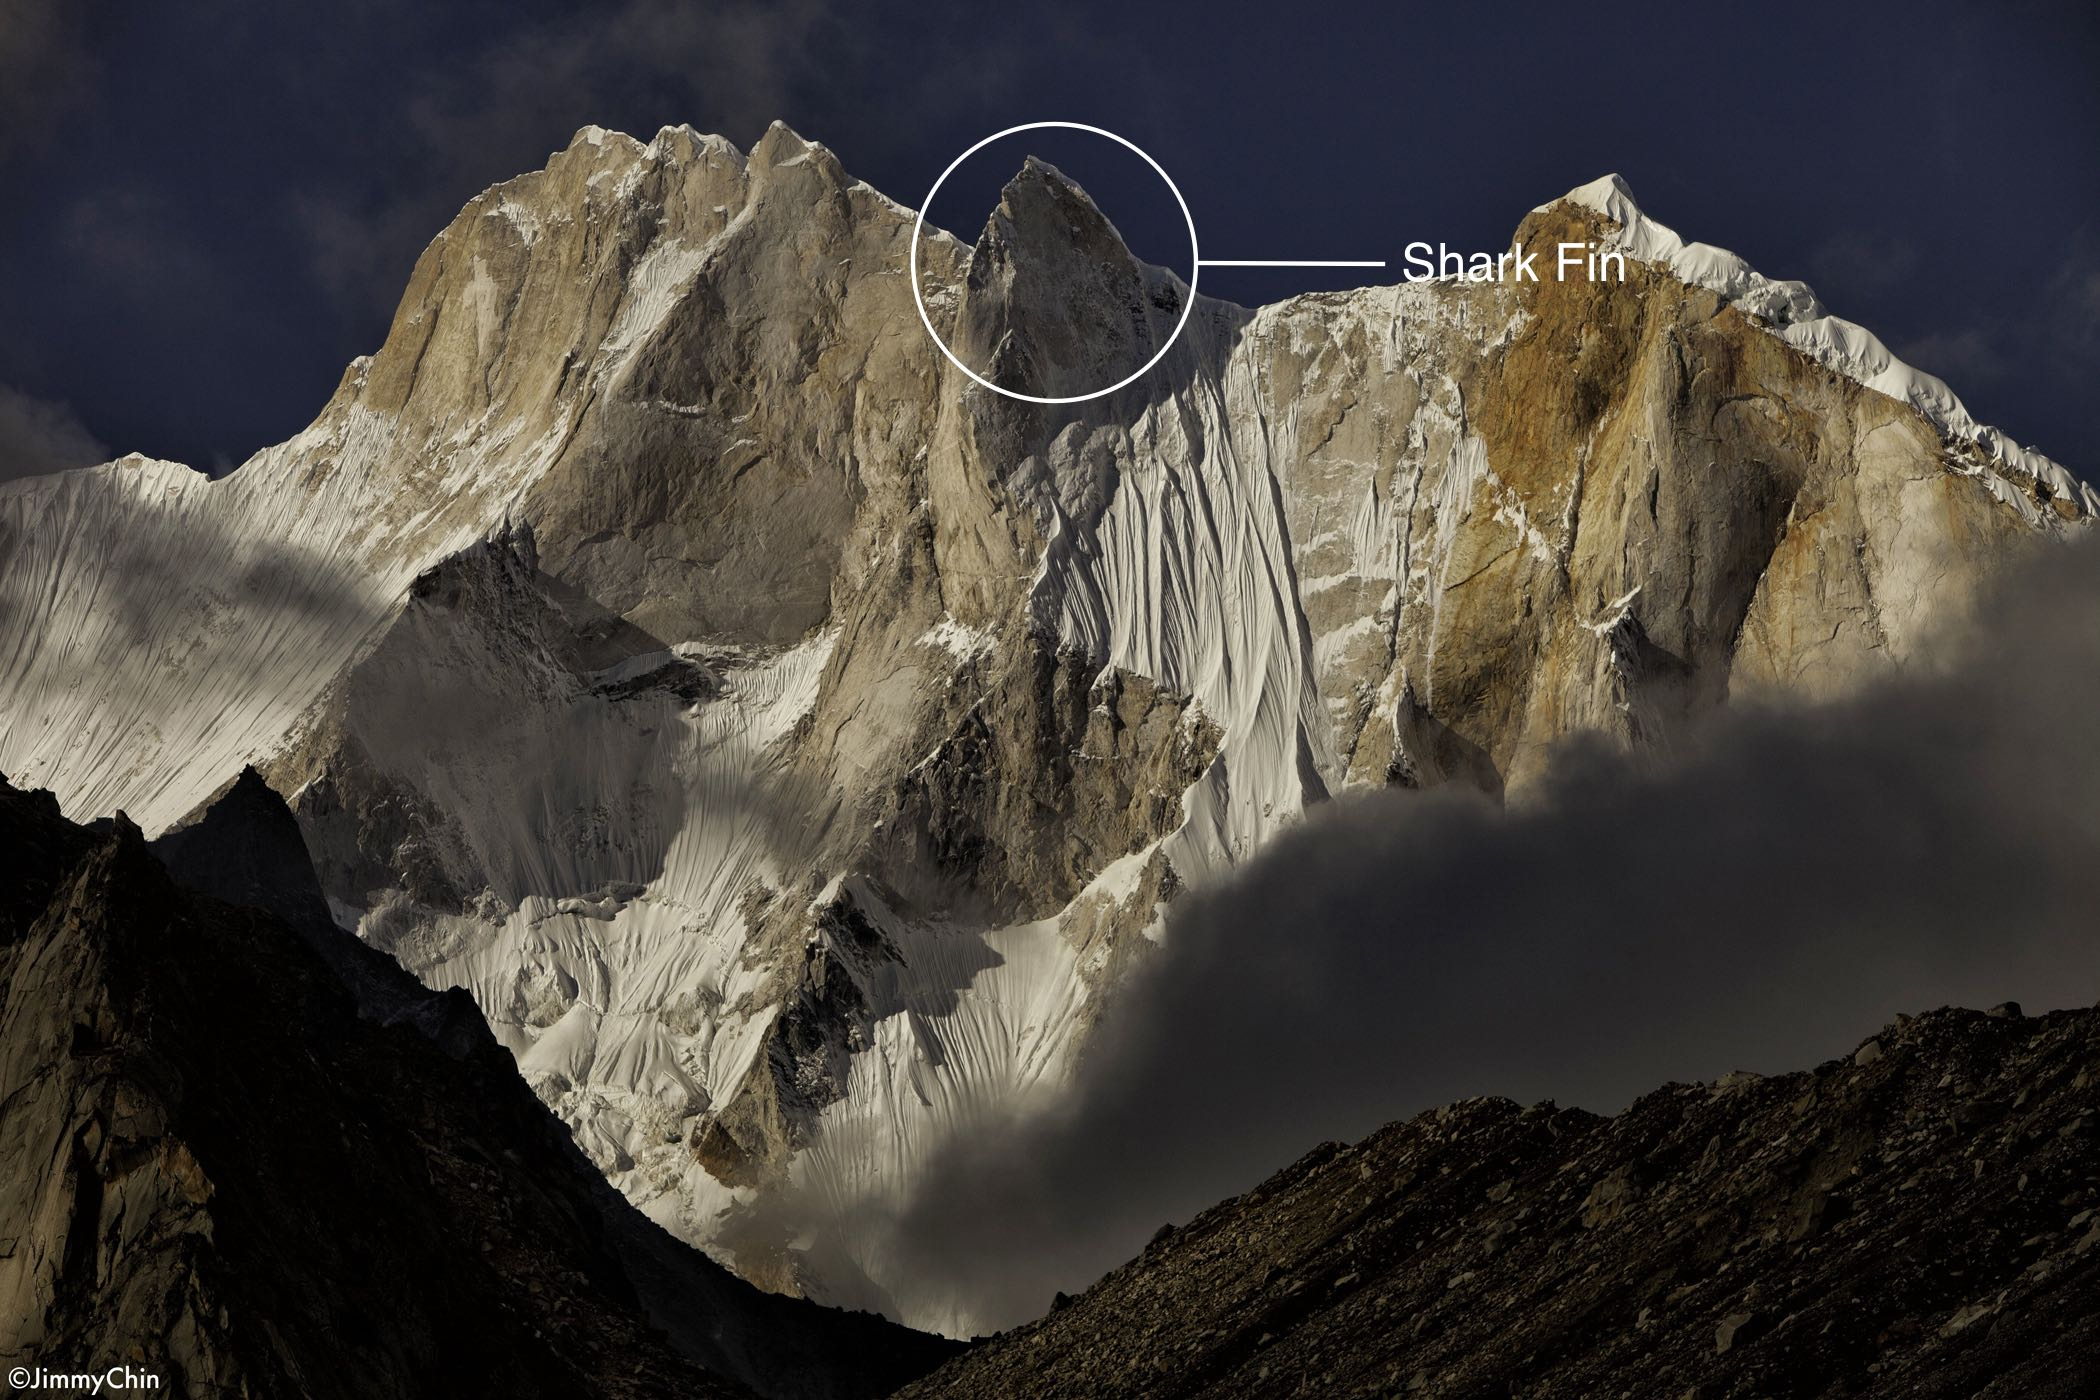 This is a view of Mount Meru as seen from Tapovon Basecamp. The Shark's Fin is the central pillar in the formation and the part of the mountain most obviously shaped like a Shark's Fin. © Jimmy Chin from http://www.merufilm.com/